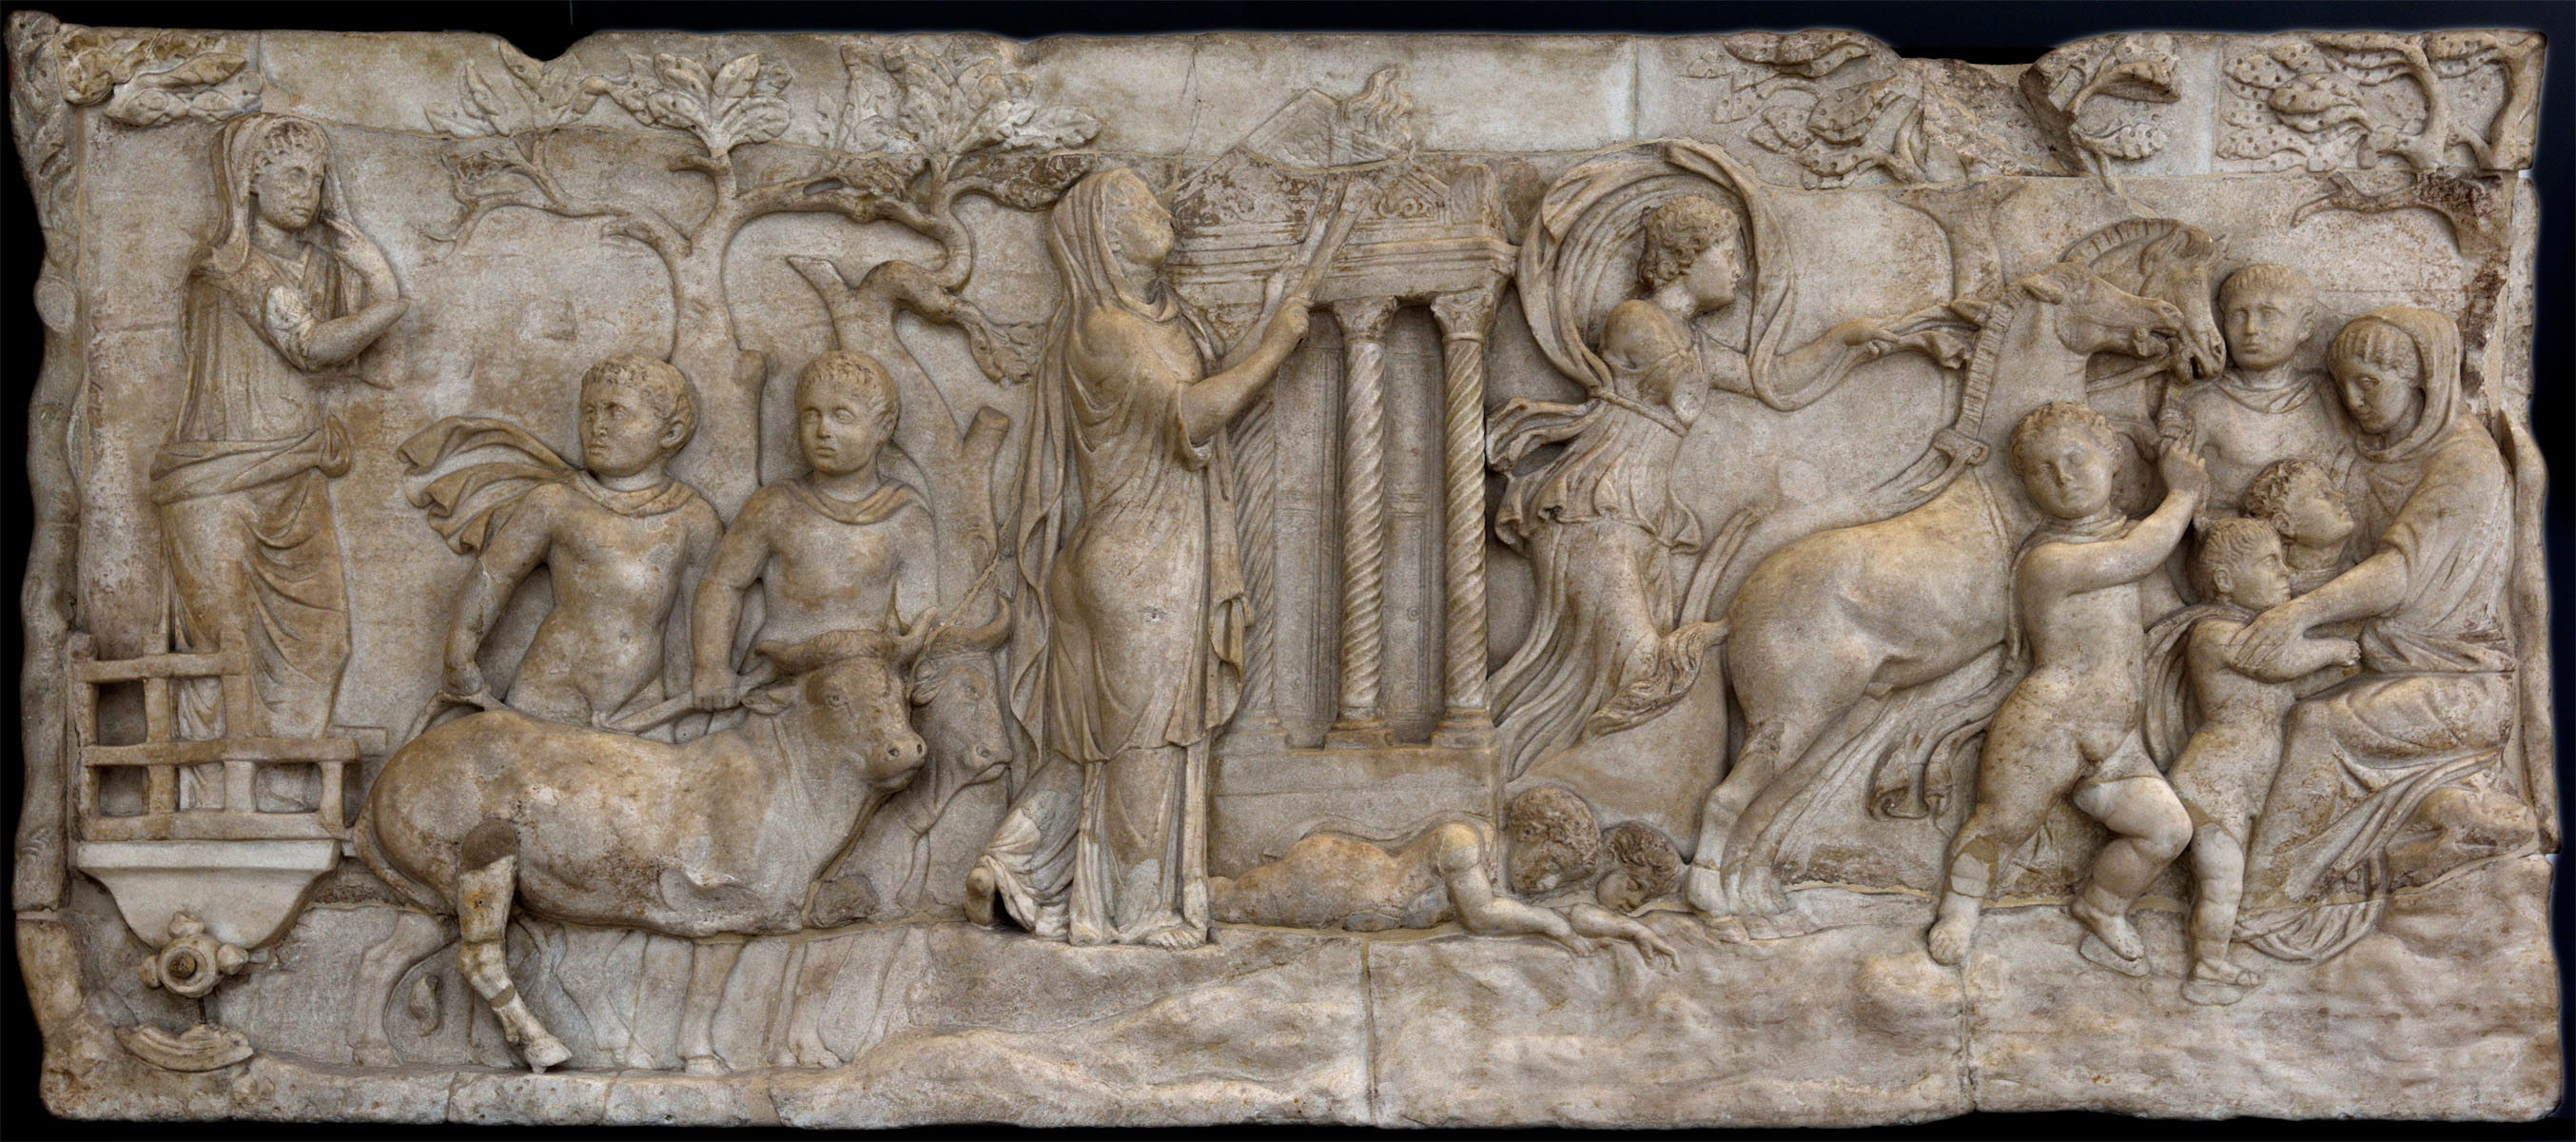 Myth of Cleobis and Biton. Relief lid of a funerary loculus in Rome. Marble. Roman work. Mid-2nd cent. CE. Inv. No. 235. Venice, National Archaeological Museum